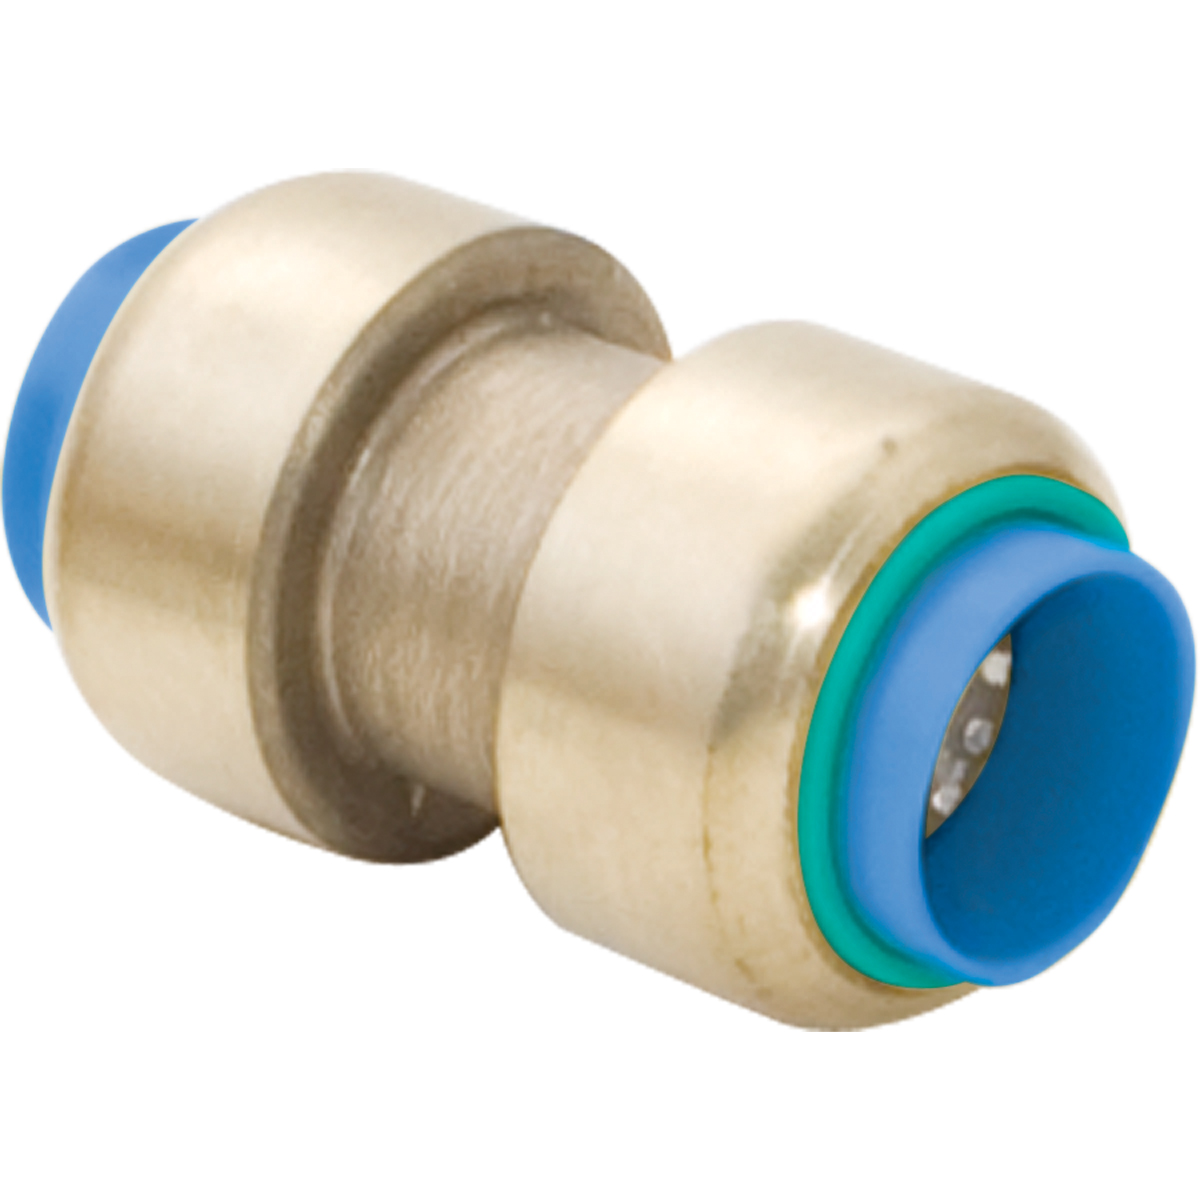 "1"" x 3/4"" Push-Fit Fitting - Coupling"